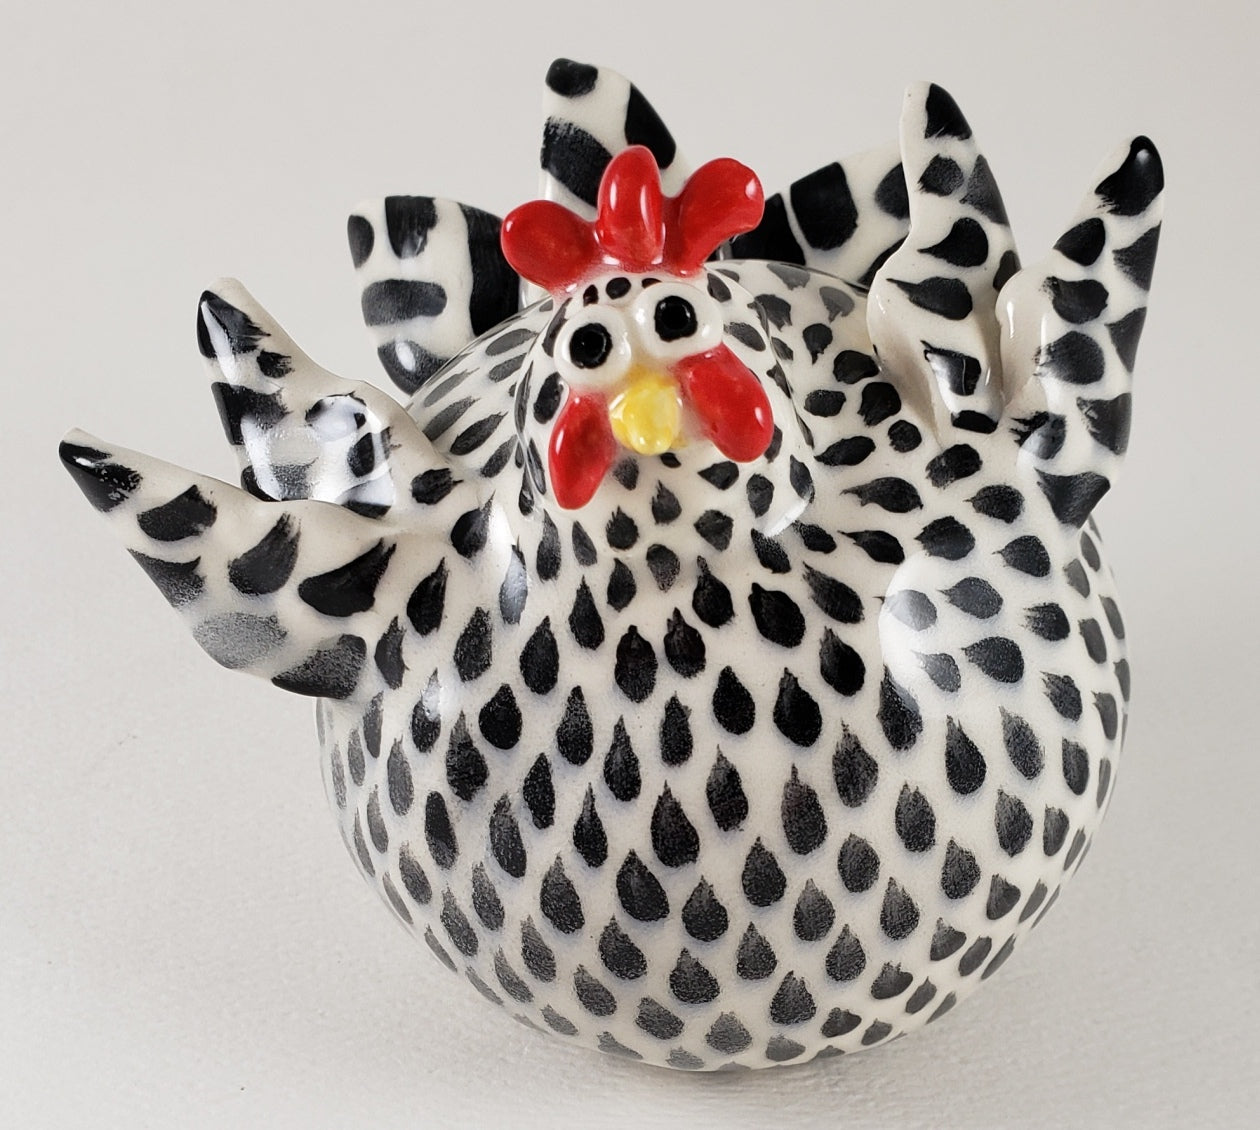 Black and White Chicken Medium - Artworks by Karen Fincannon